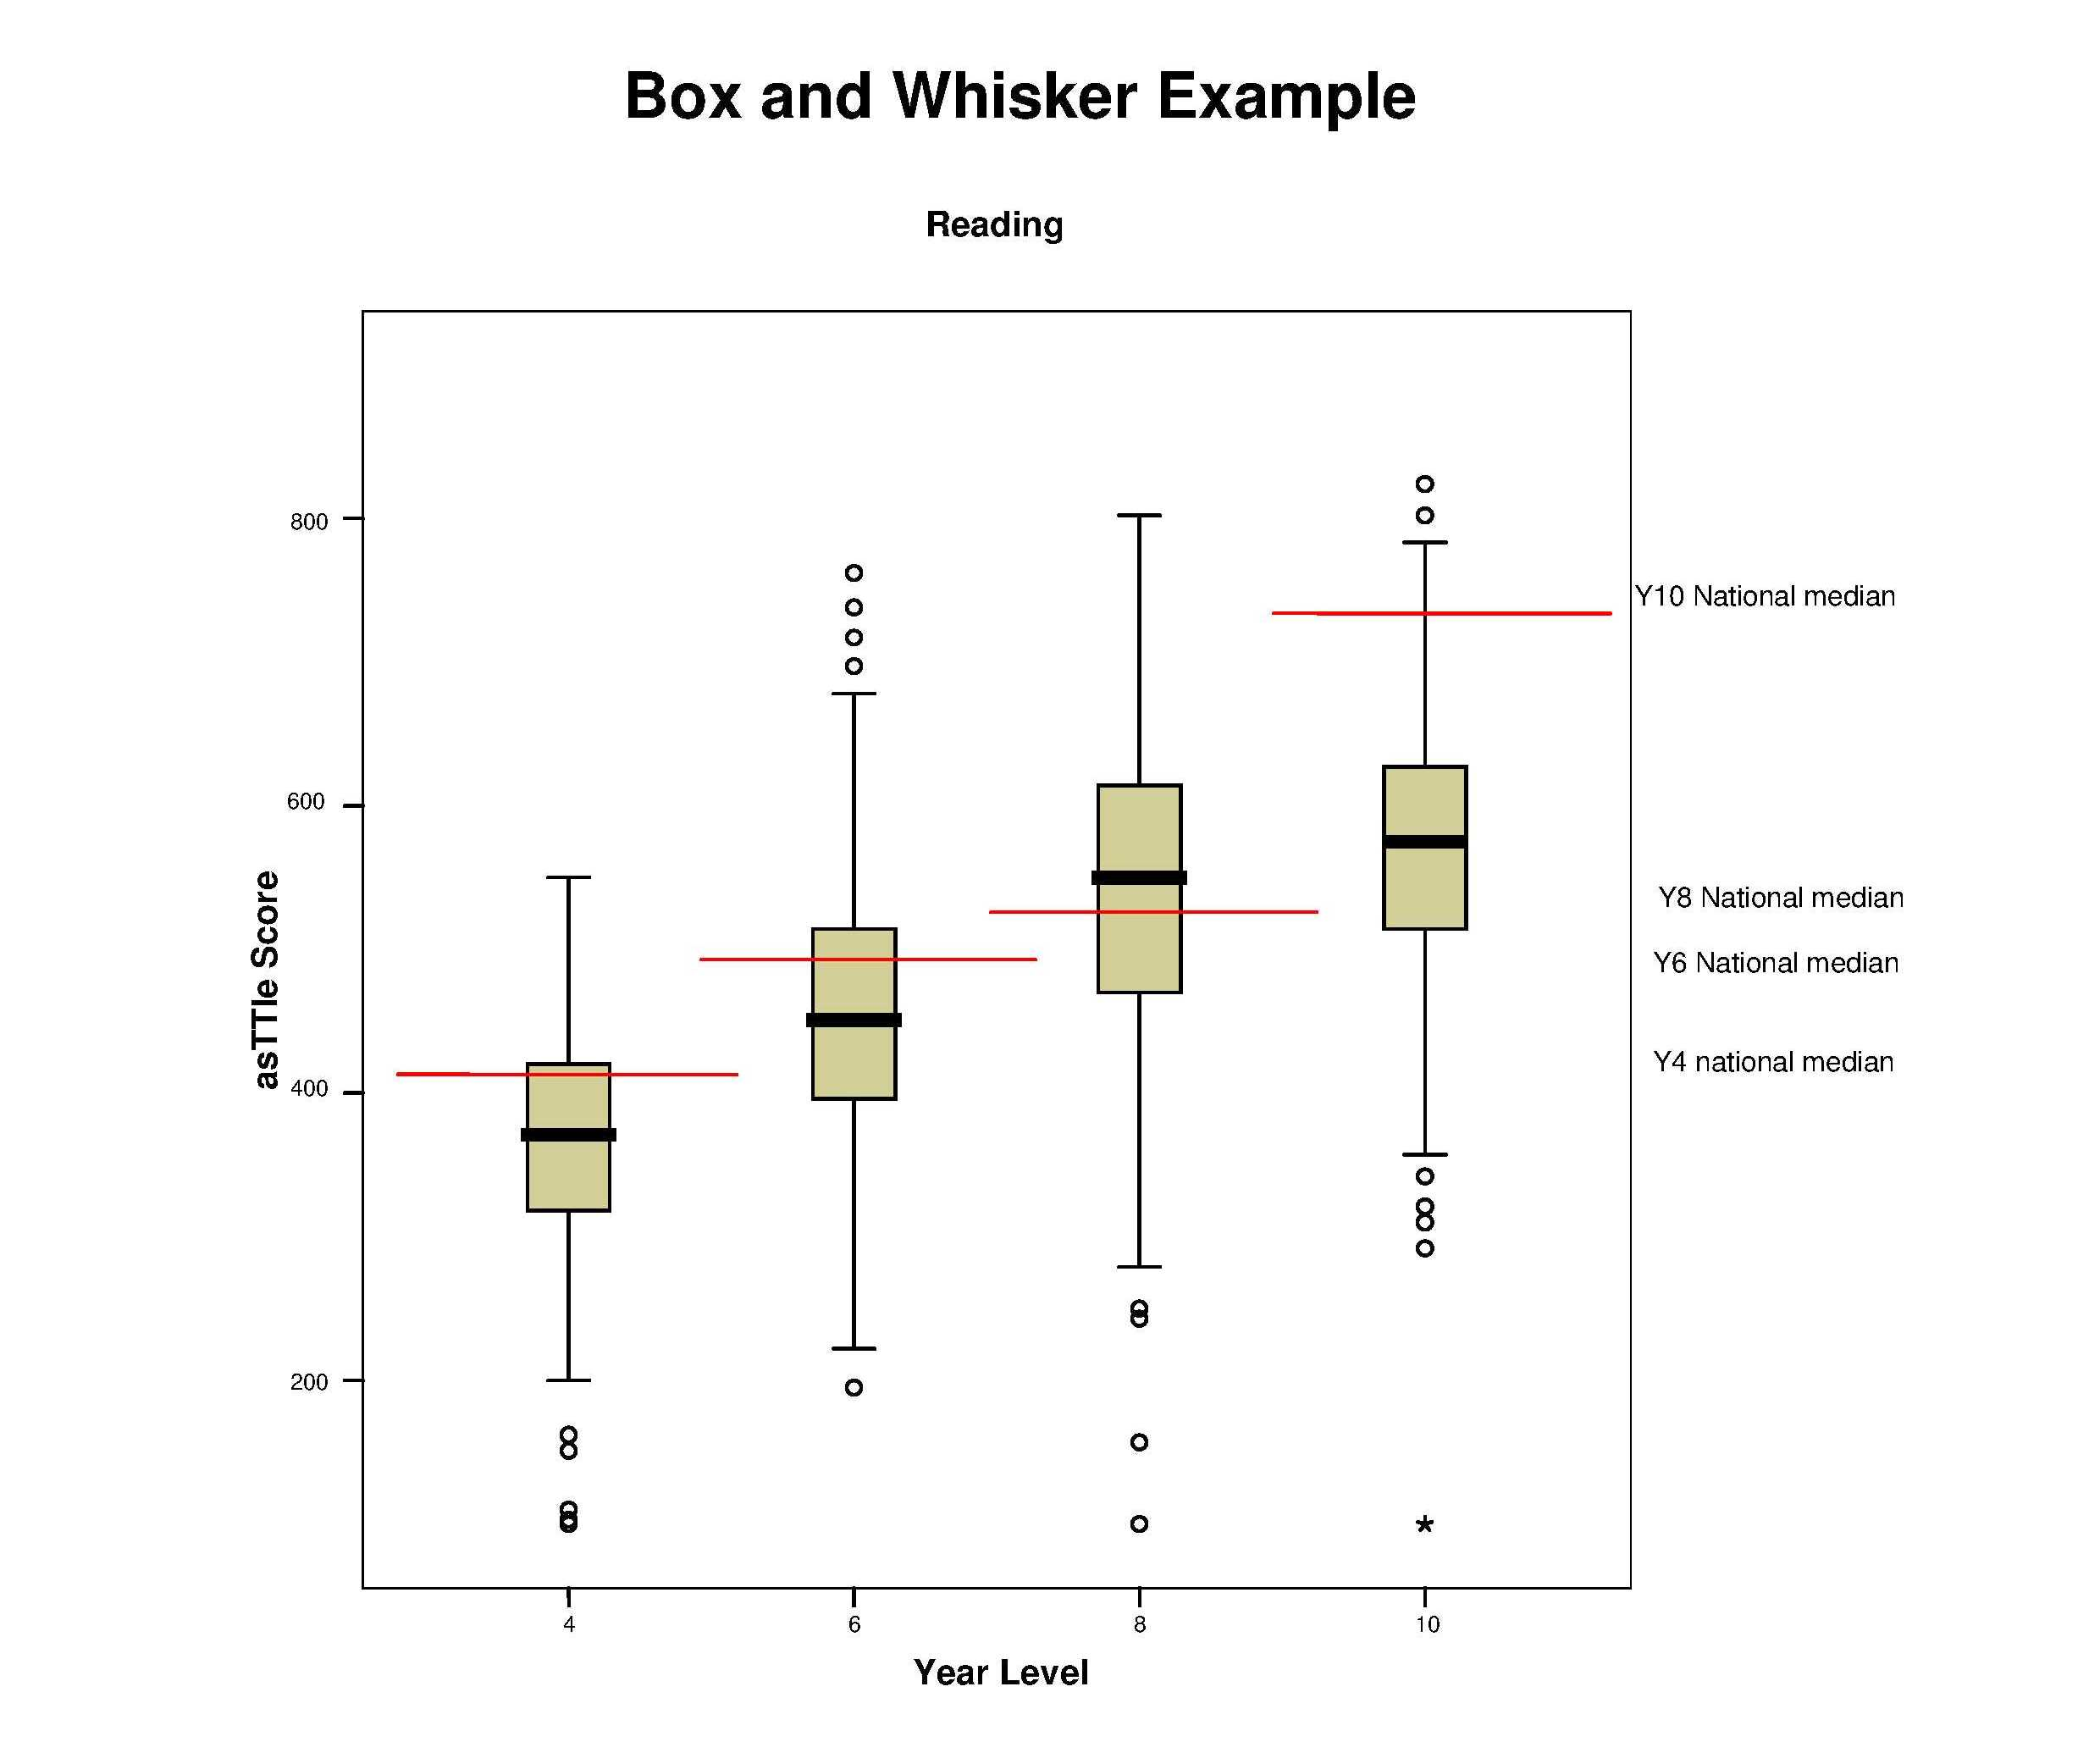 The Left Axis Represents Scores And The Right Axis Represents The Year  Level The Thick Black Line On Each Of The Boxes Represents The Median